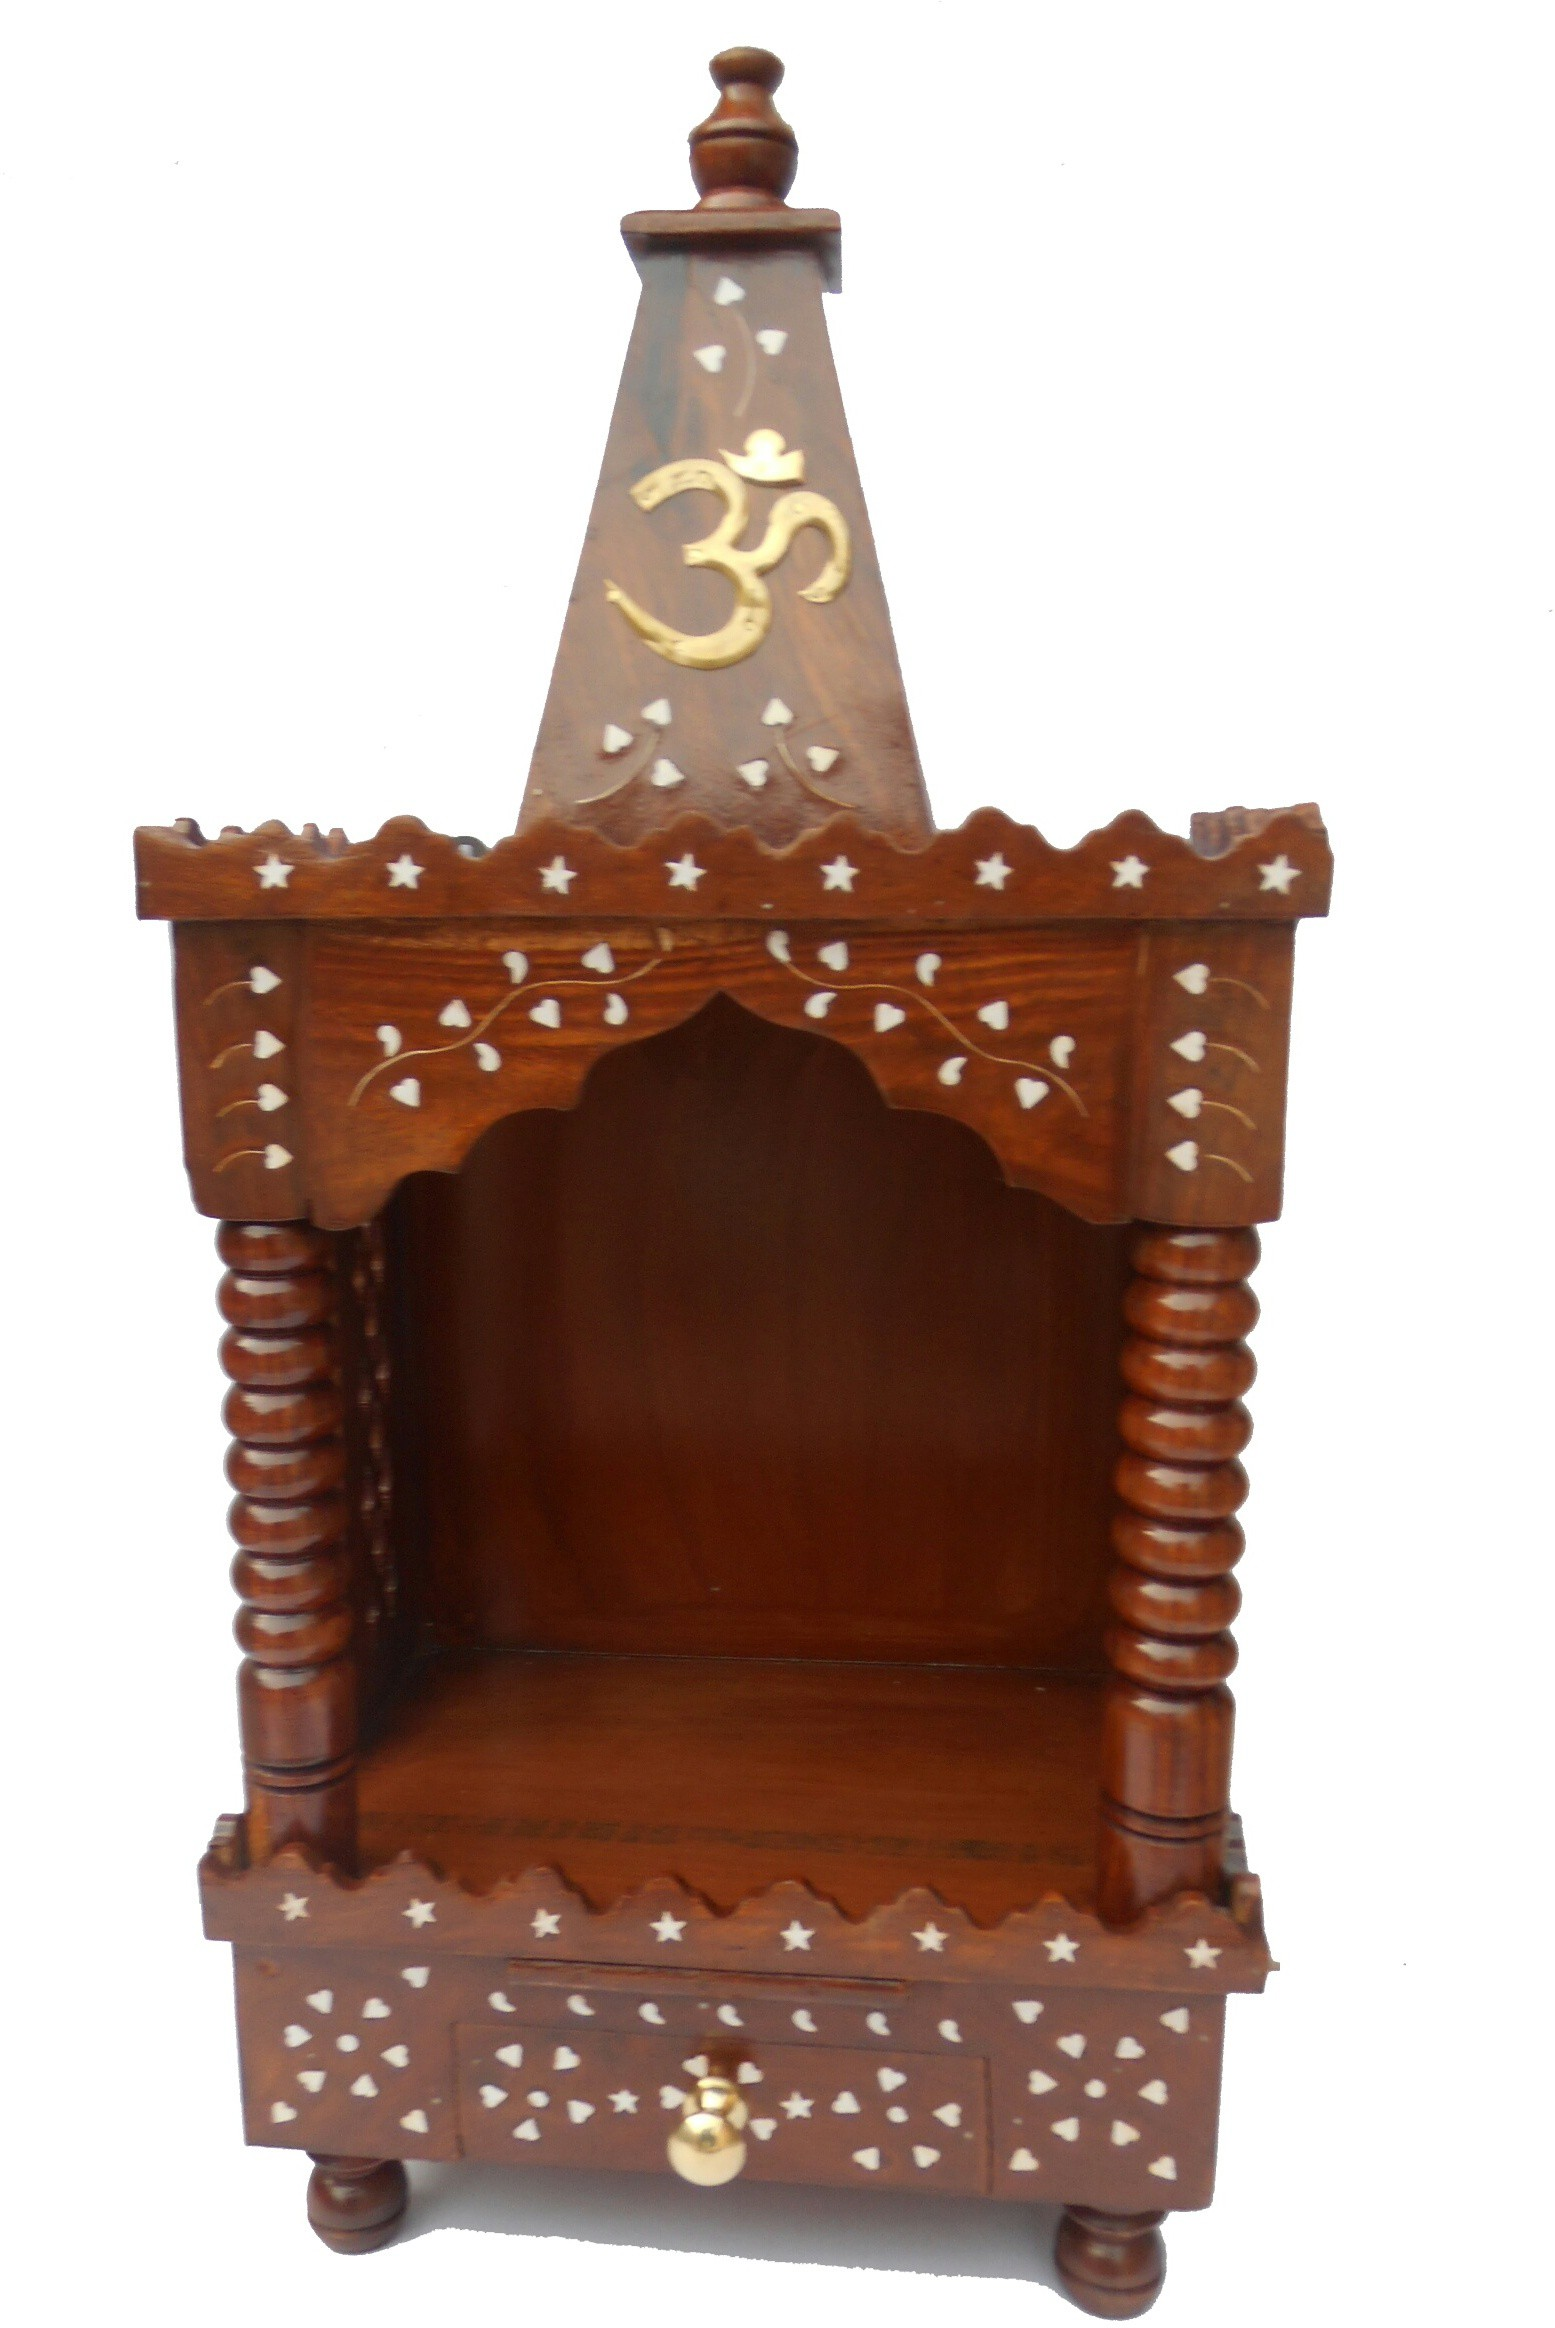 View Handicraft SHEESHAM WOOD MADE TEMPLE WITH DRAWER IN IT HEIGHT-70CM Wooden Home Temple(Height: 70 cm) Furniture (Handicraft)